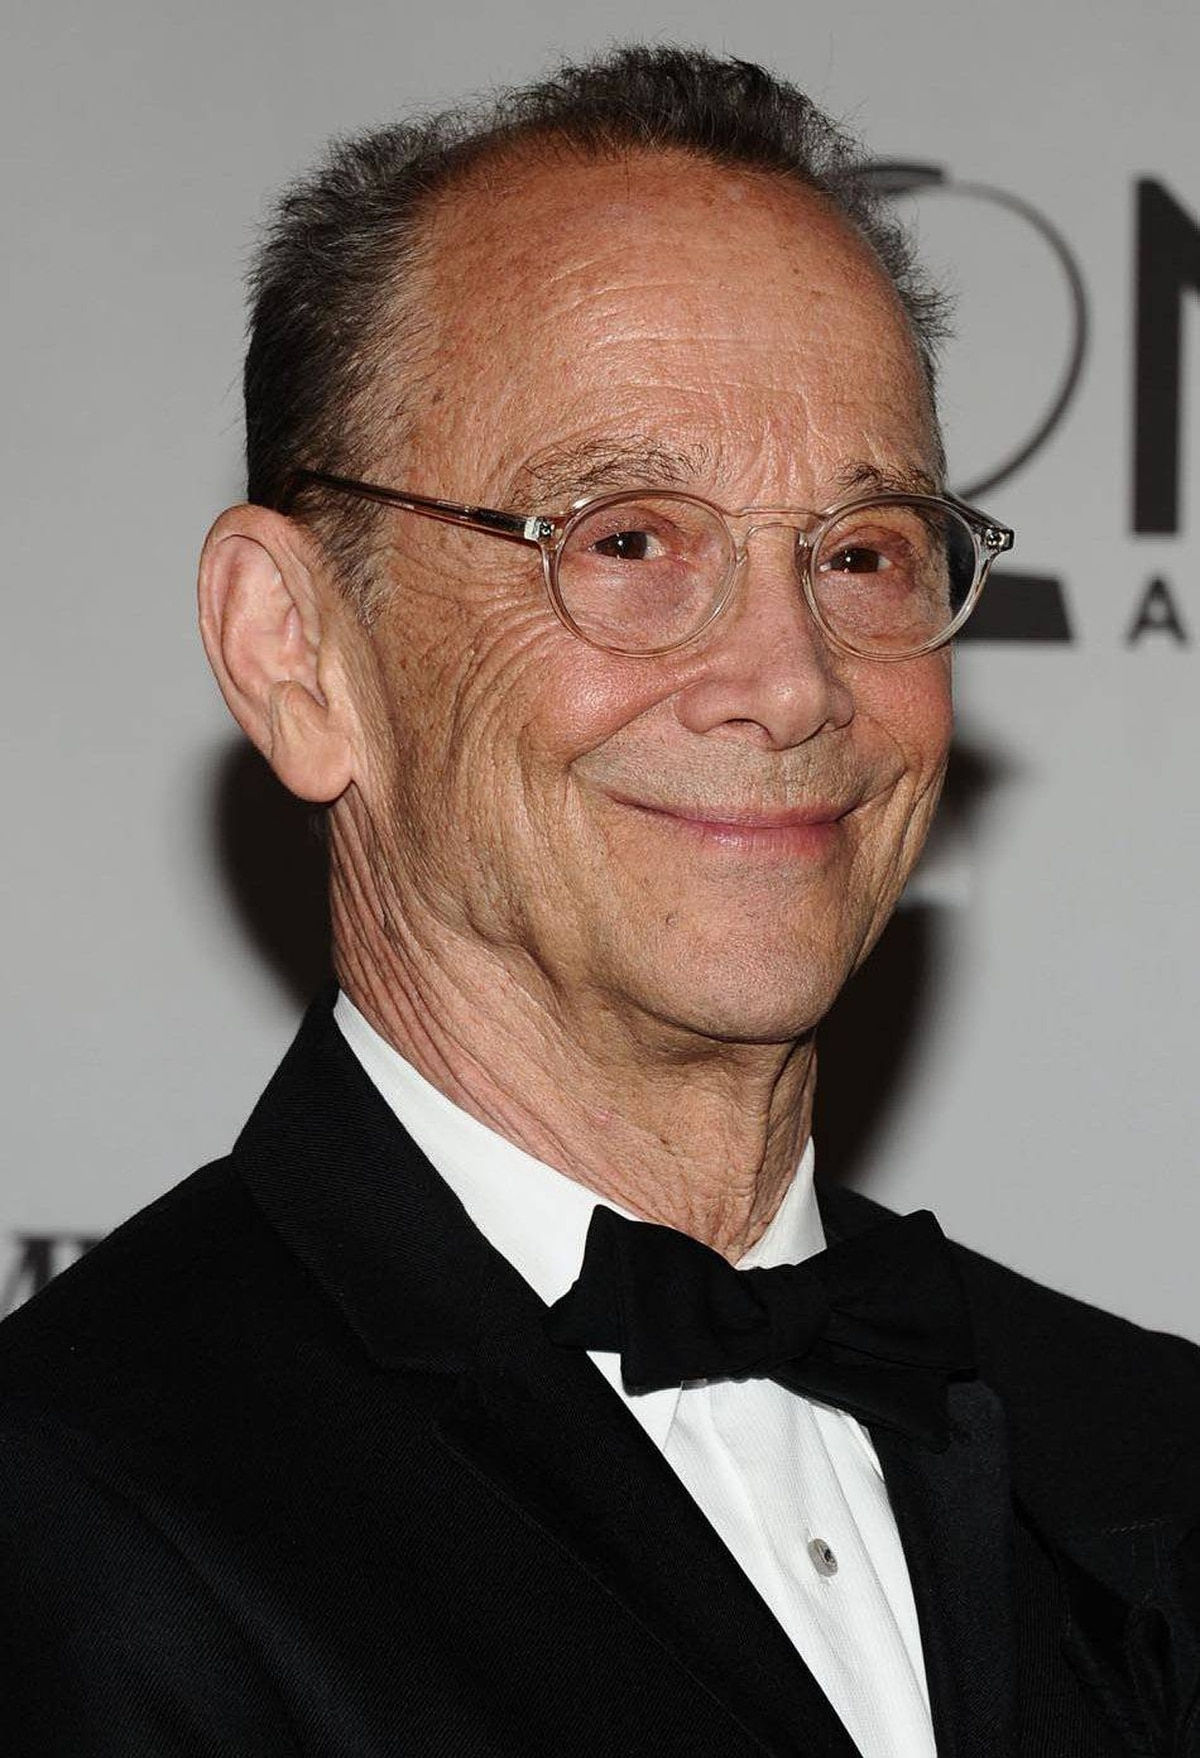 Joel Grey arrives at the 65th annual Tony Awards, Sunday, June 12, 2011 in New York.